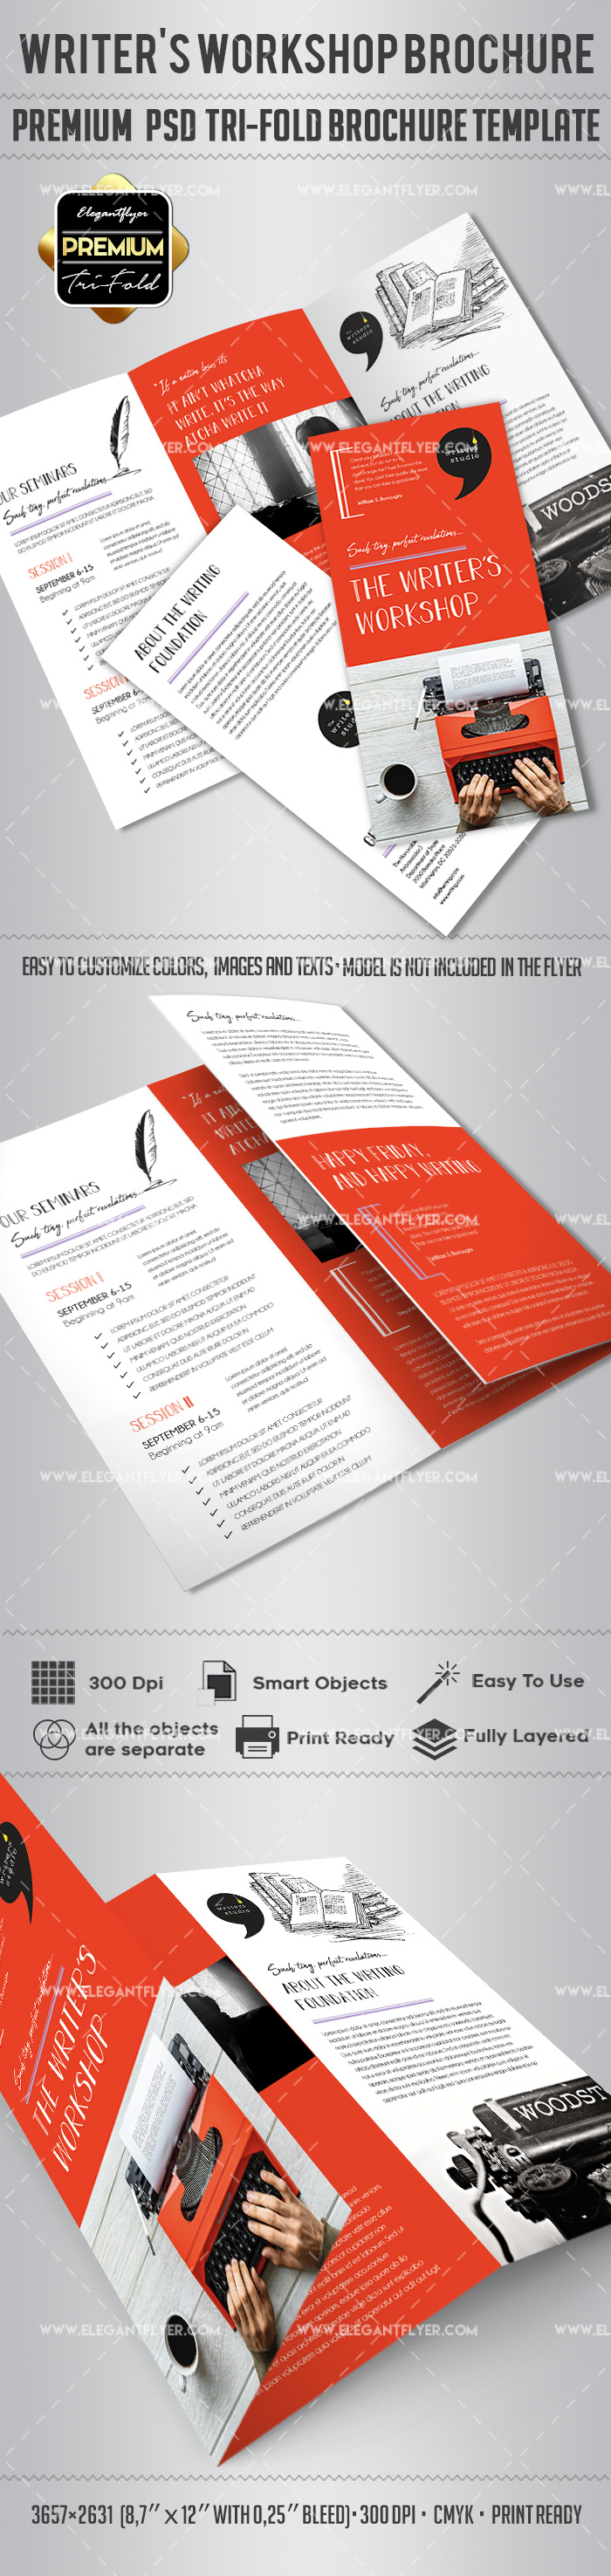 Writers Workshop Brochure Template By ElegantFlyer - Workshop brochure template